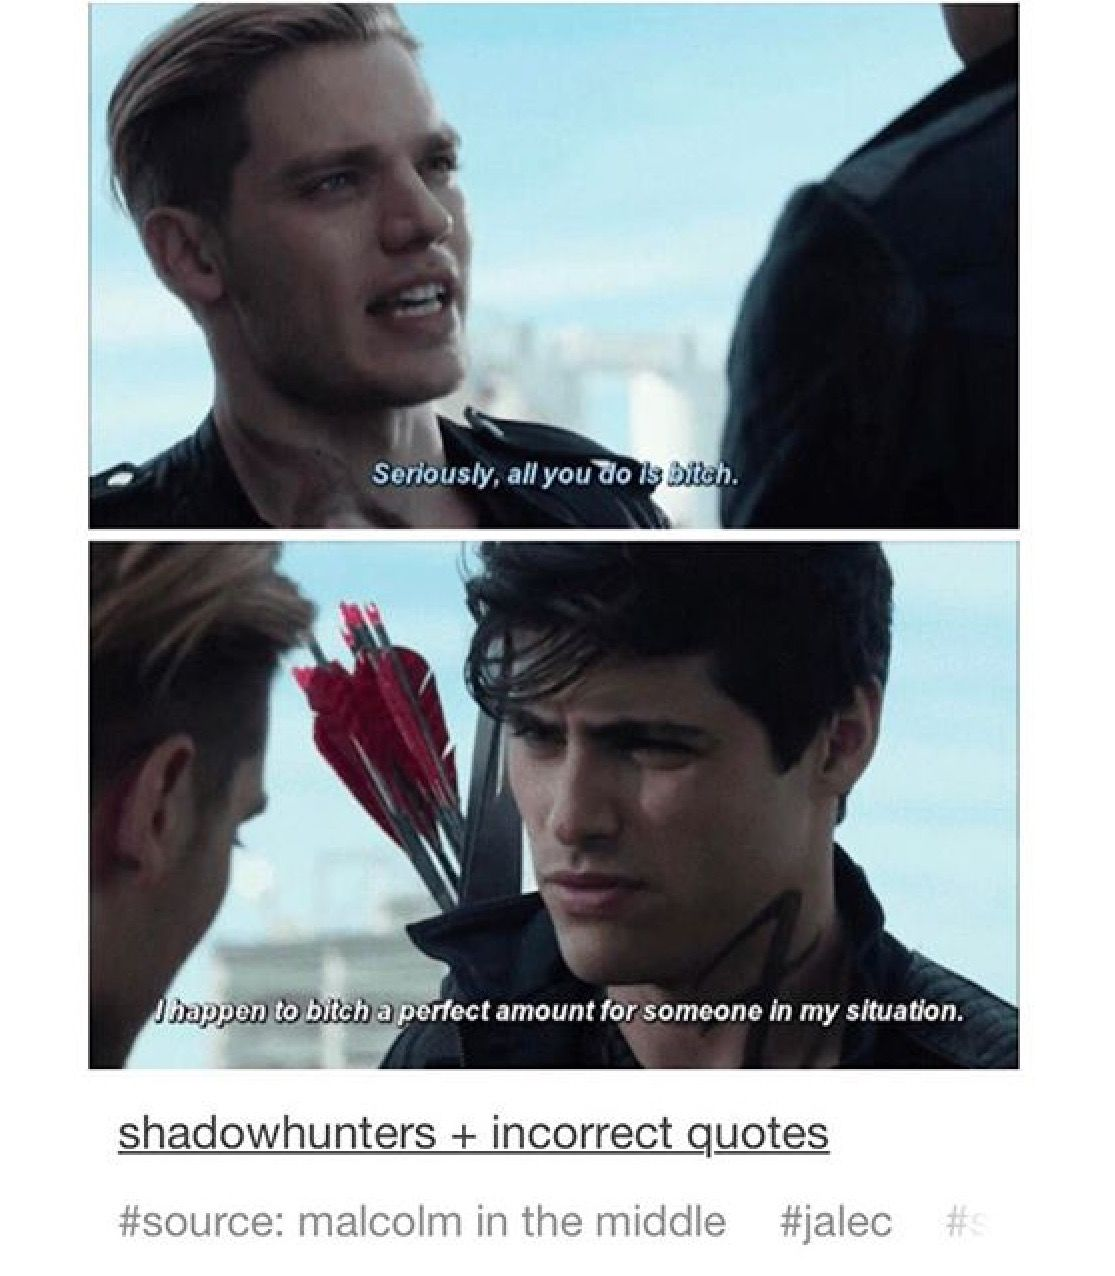 incorrect shadowhunters quotes - 736×842